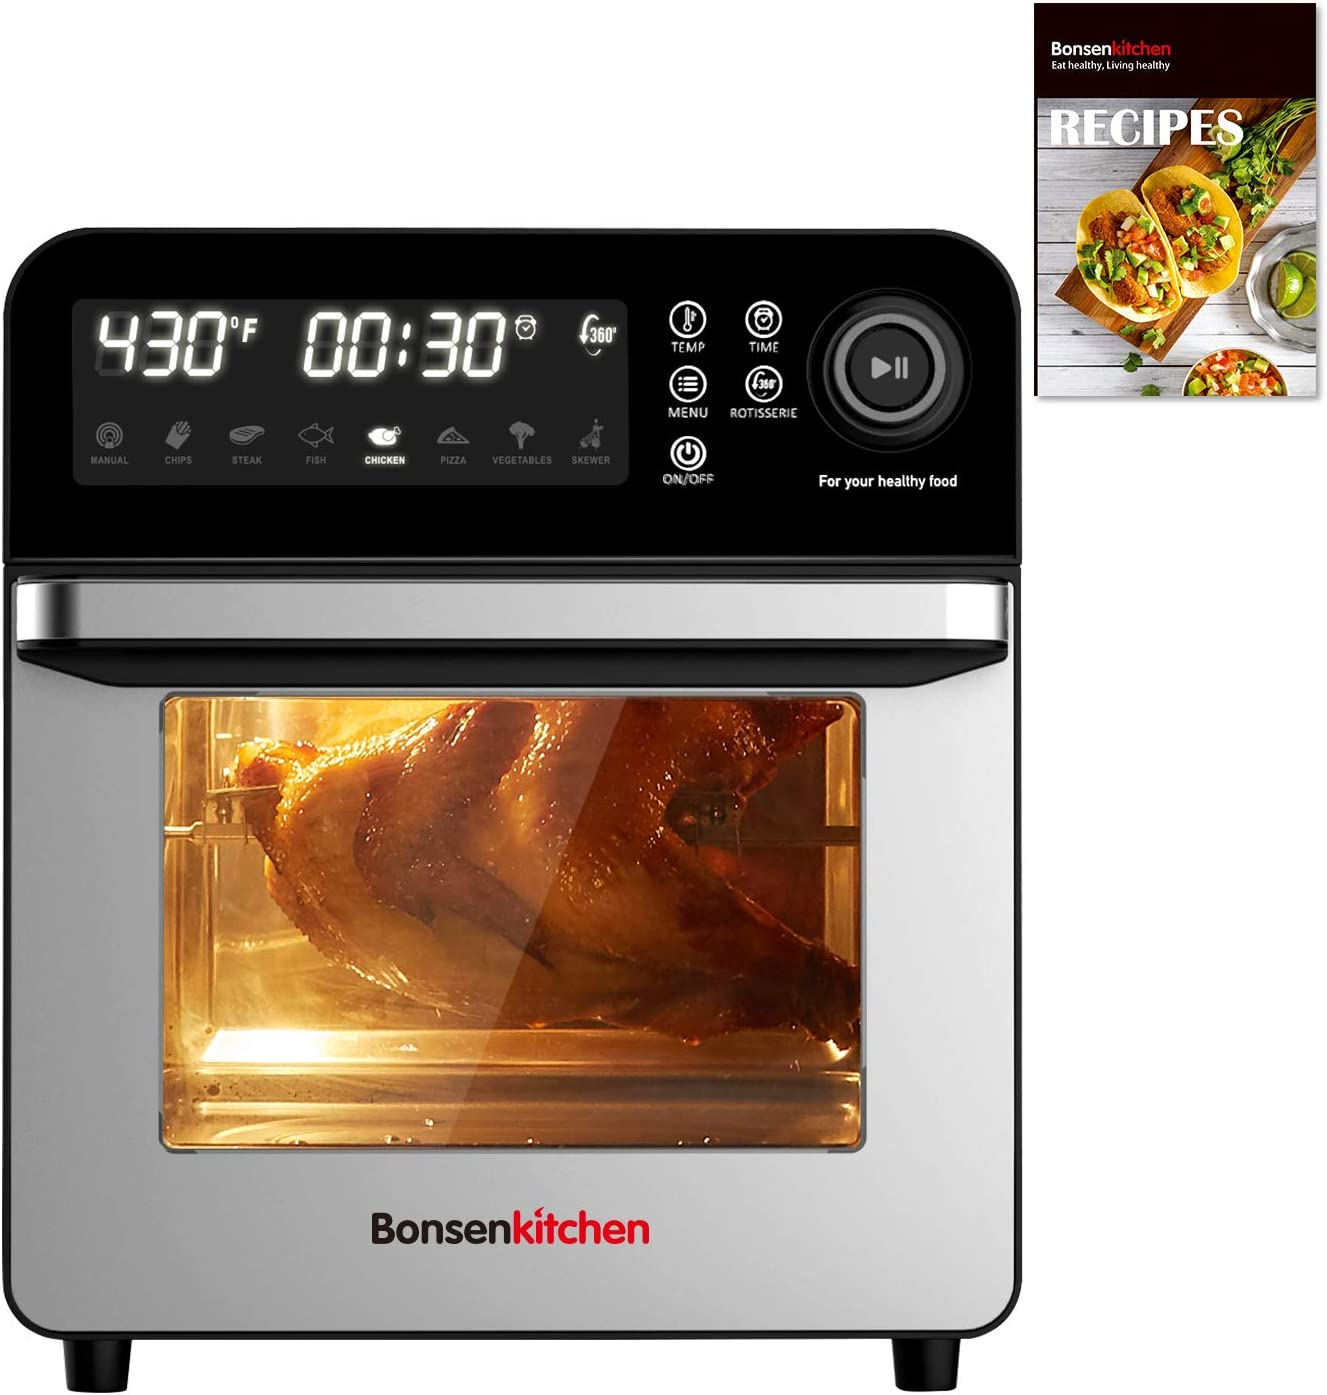 Bonsenkitchen Air Fryer Oven, 15.3QT Rotisserie Oven with Dehydrator, 7 Accessories & 50 Recipe, 1600W 8-in-1 Digital Family Size Air Fryer, Large LED Touchscreen & 7 Presets